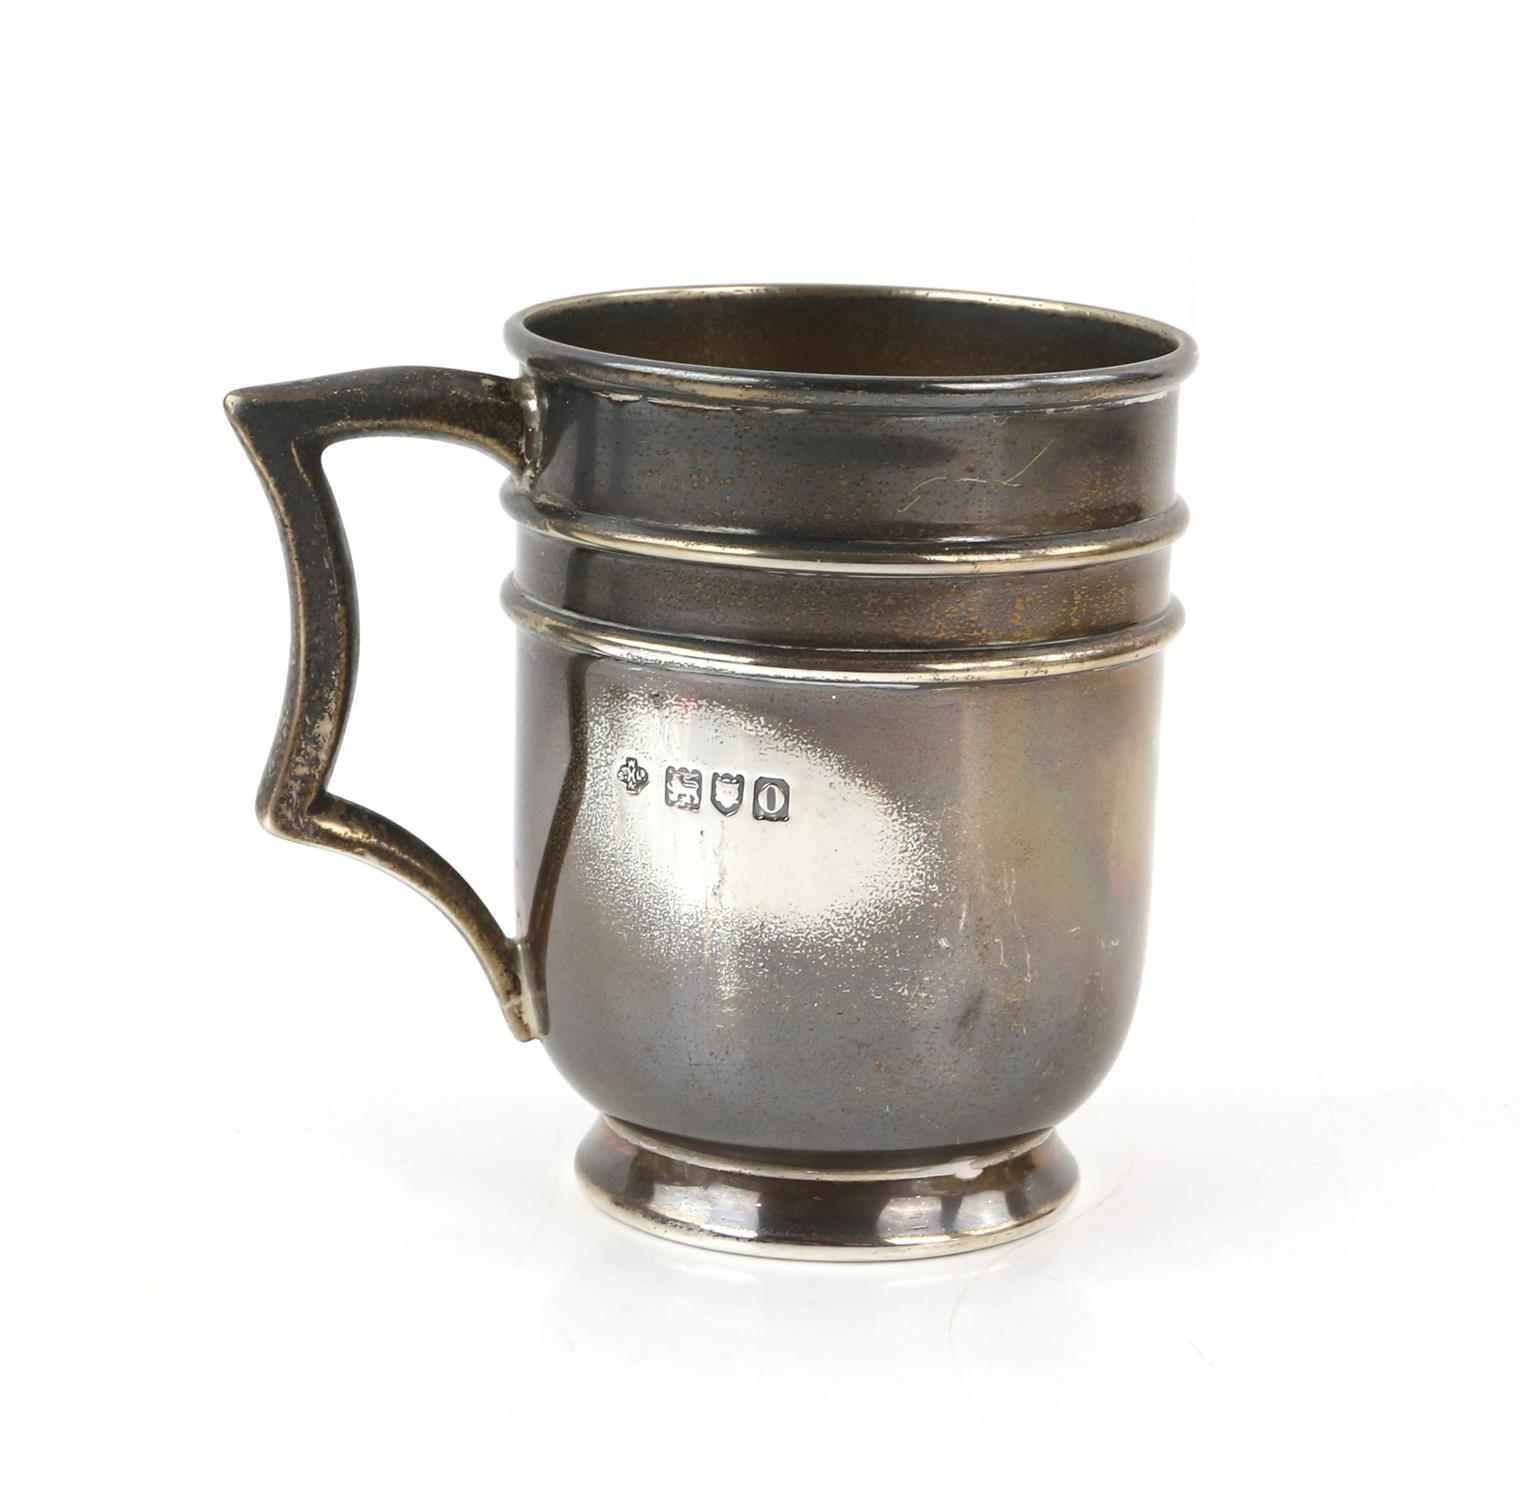 Edward VII silver cream jug with 'S'-scroll handle on round foot, by Ackroyd Rhodes, London, 1904, - Image 4 of 7